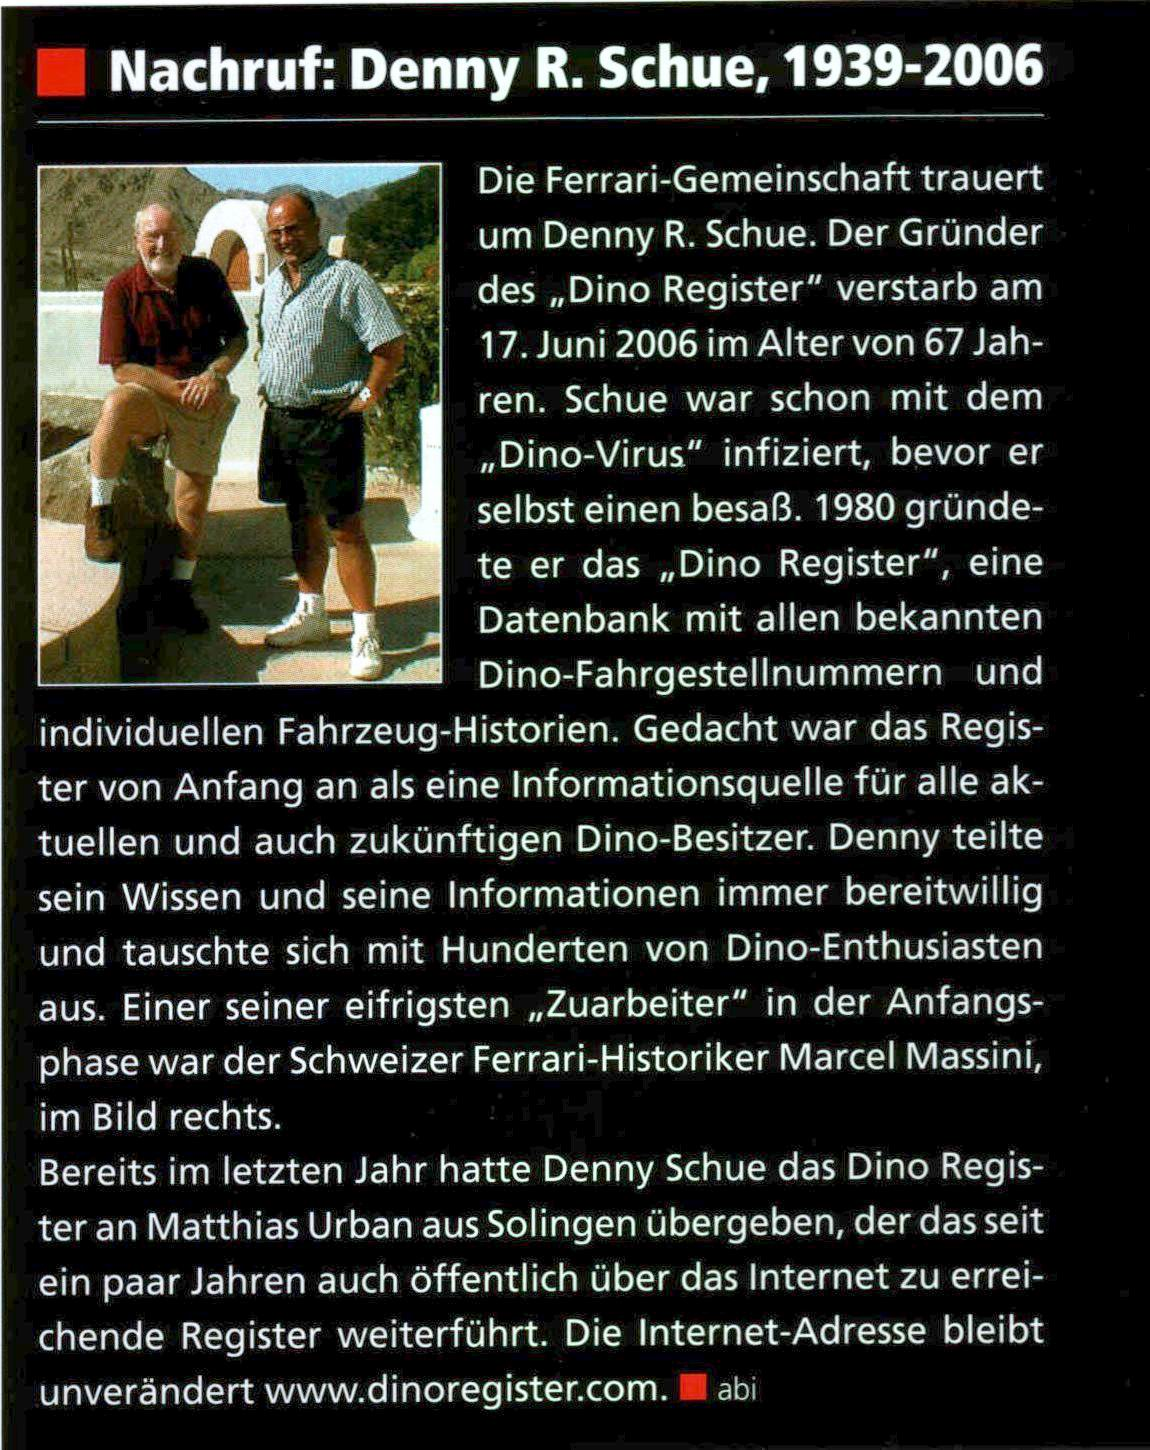 Article Ferrari World about Denny Shue